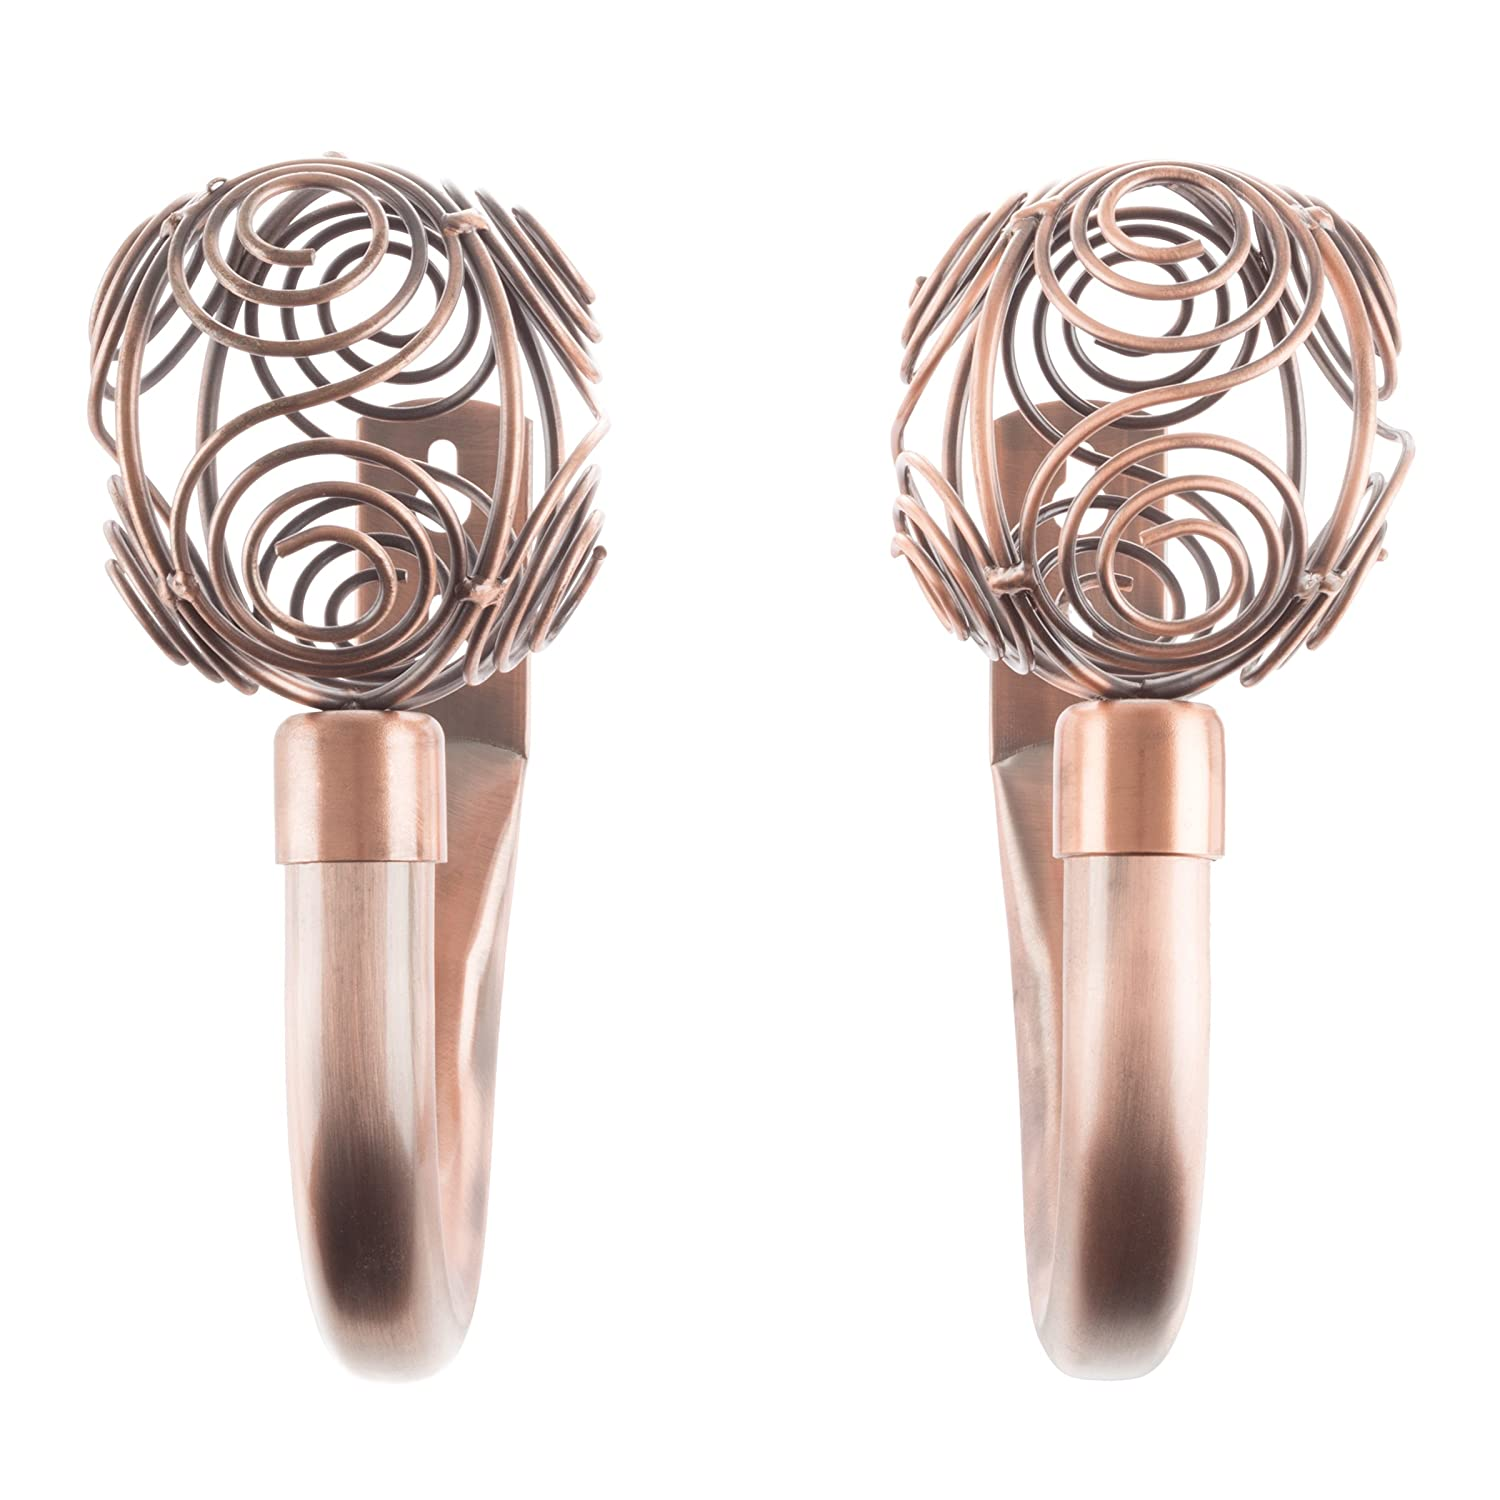 Lavish Home 63-17011A-C Curtain Holdback Set with Circle Finial, Copper